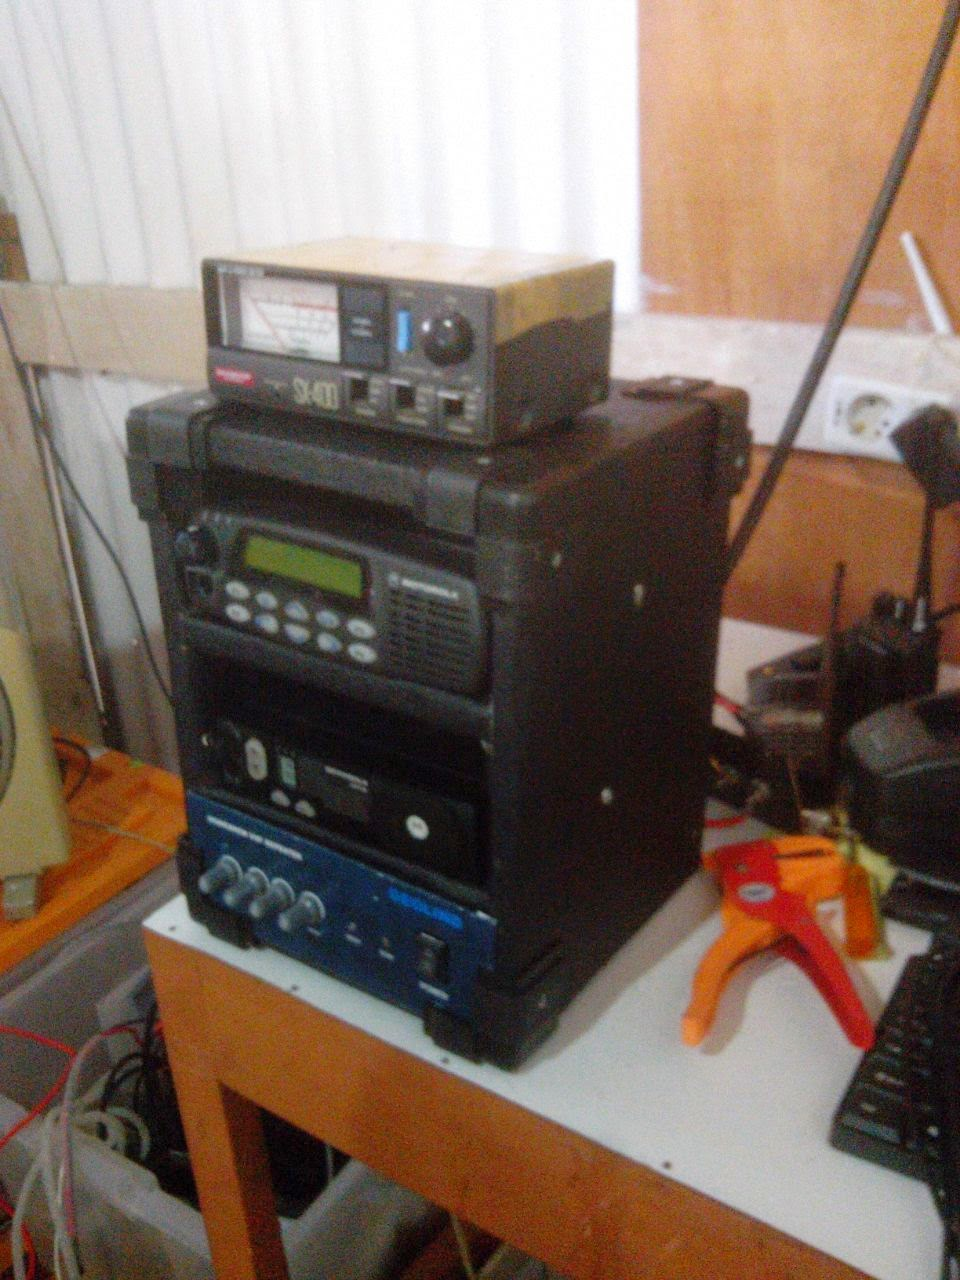 REPEATER RADIO KOMUNIKASI